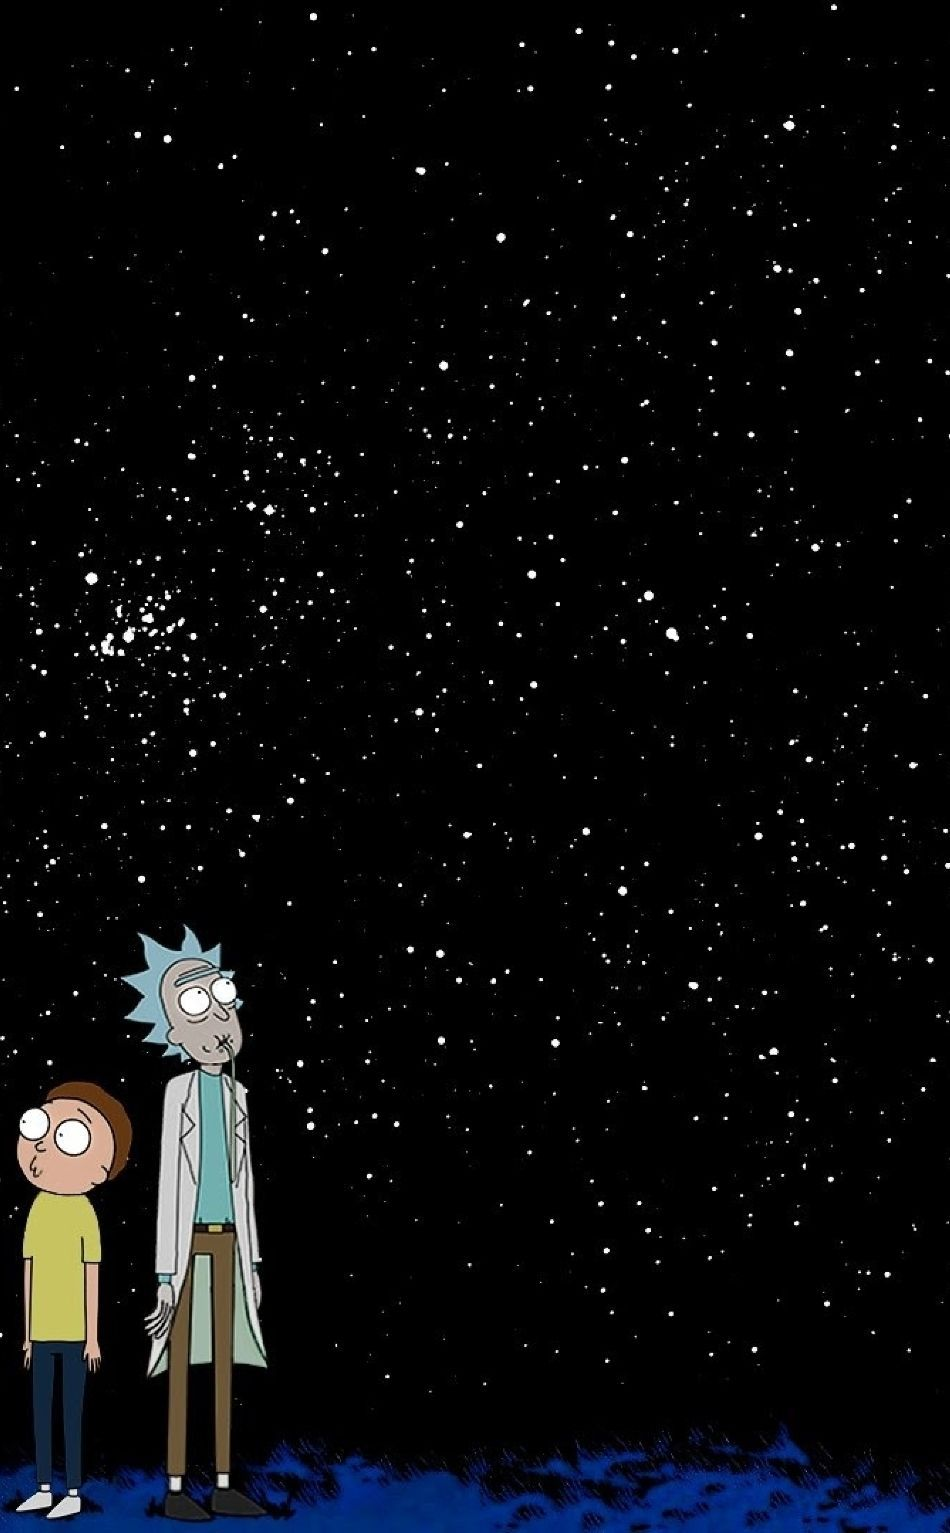 Rick And Morty Iphone Wallpapers Wallpaper Cave Within Rick And Morty Wallpaper In 2020 Cartoon Wallpaper Hd Cartoon Wallpaper Beast Wallpaper